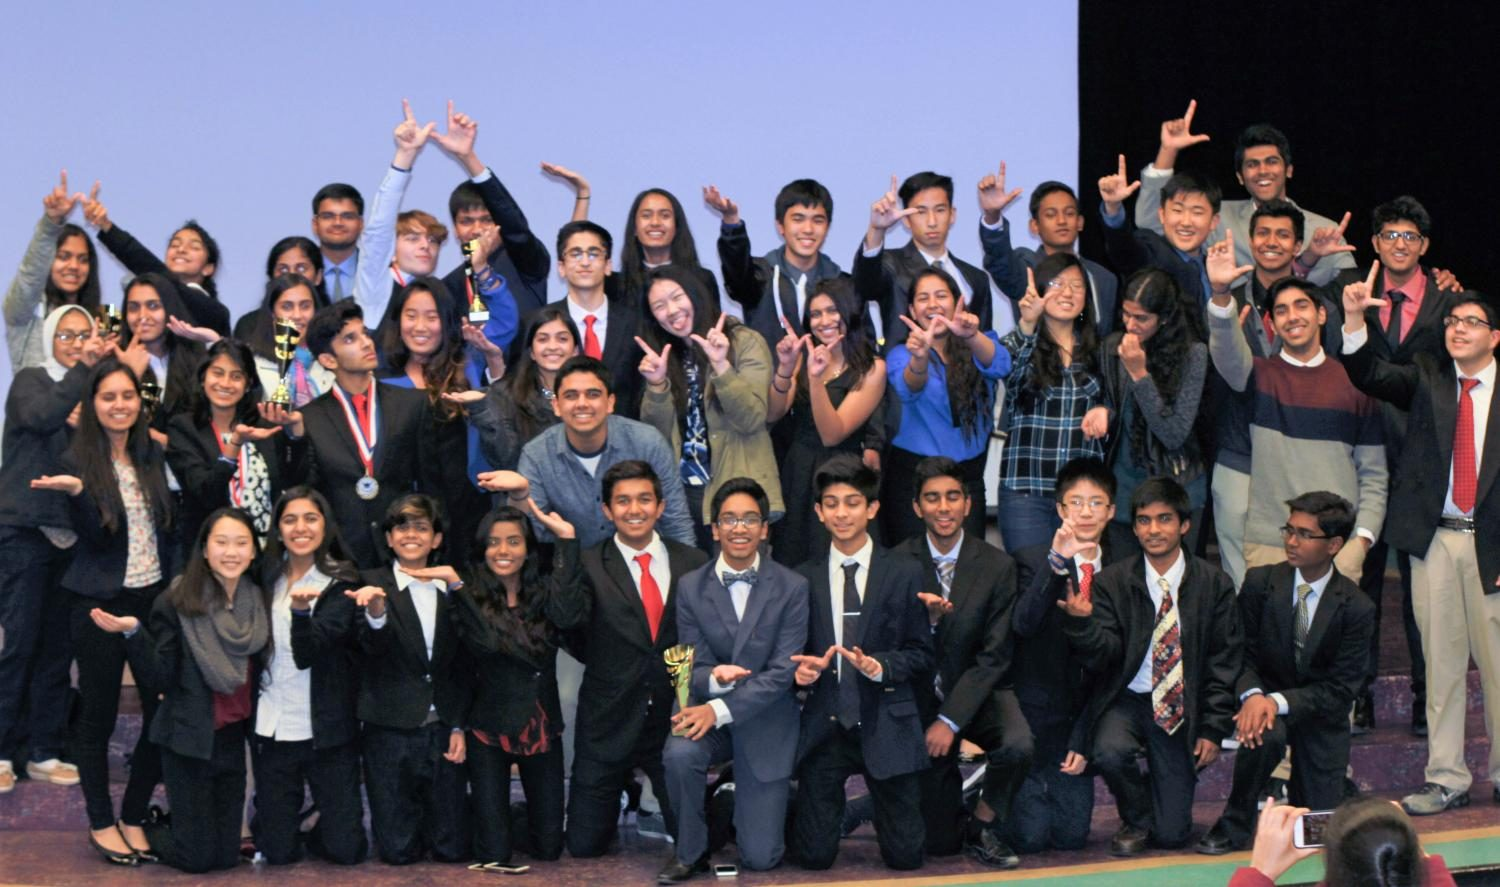 The+Irvington+Debate+Club+rejoices+with+their+trophies+after+the+invitational.